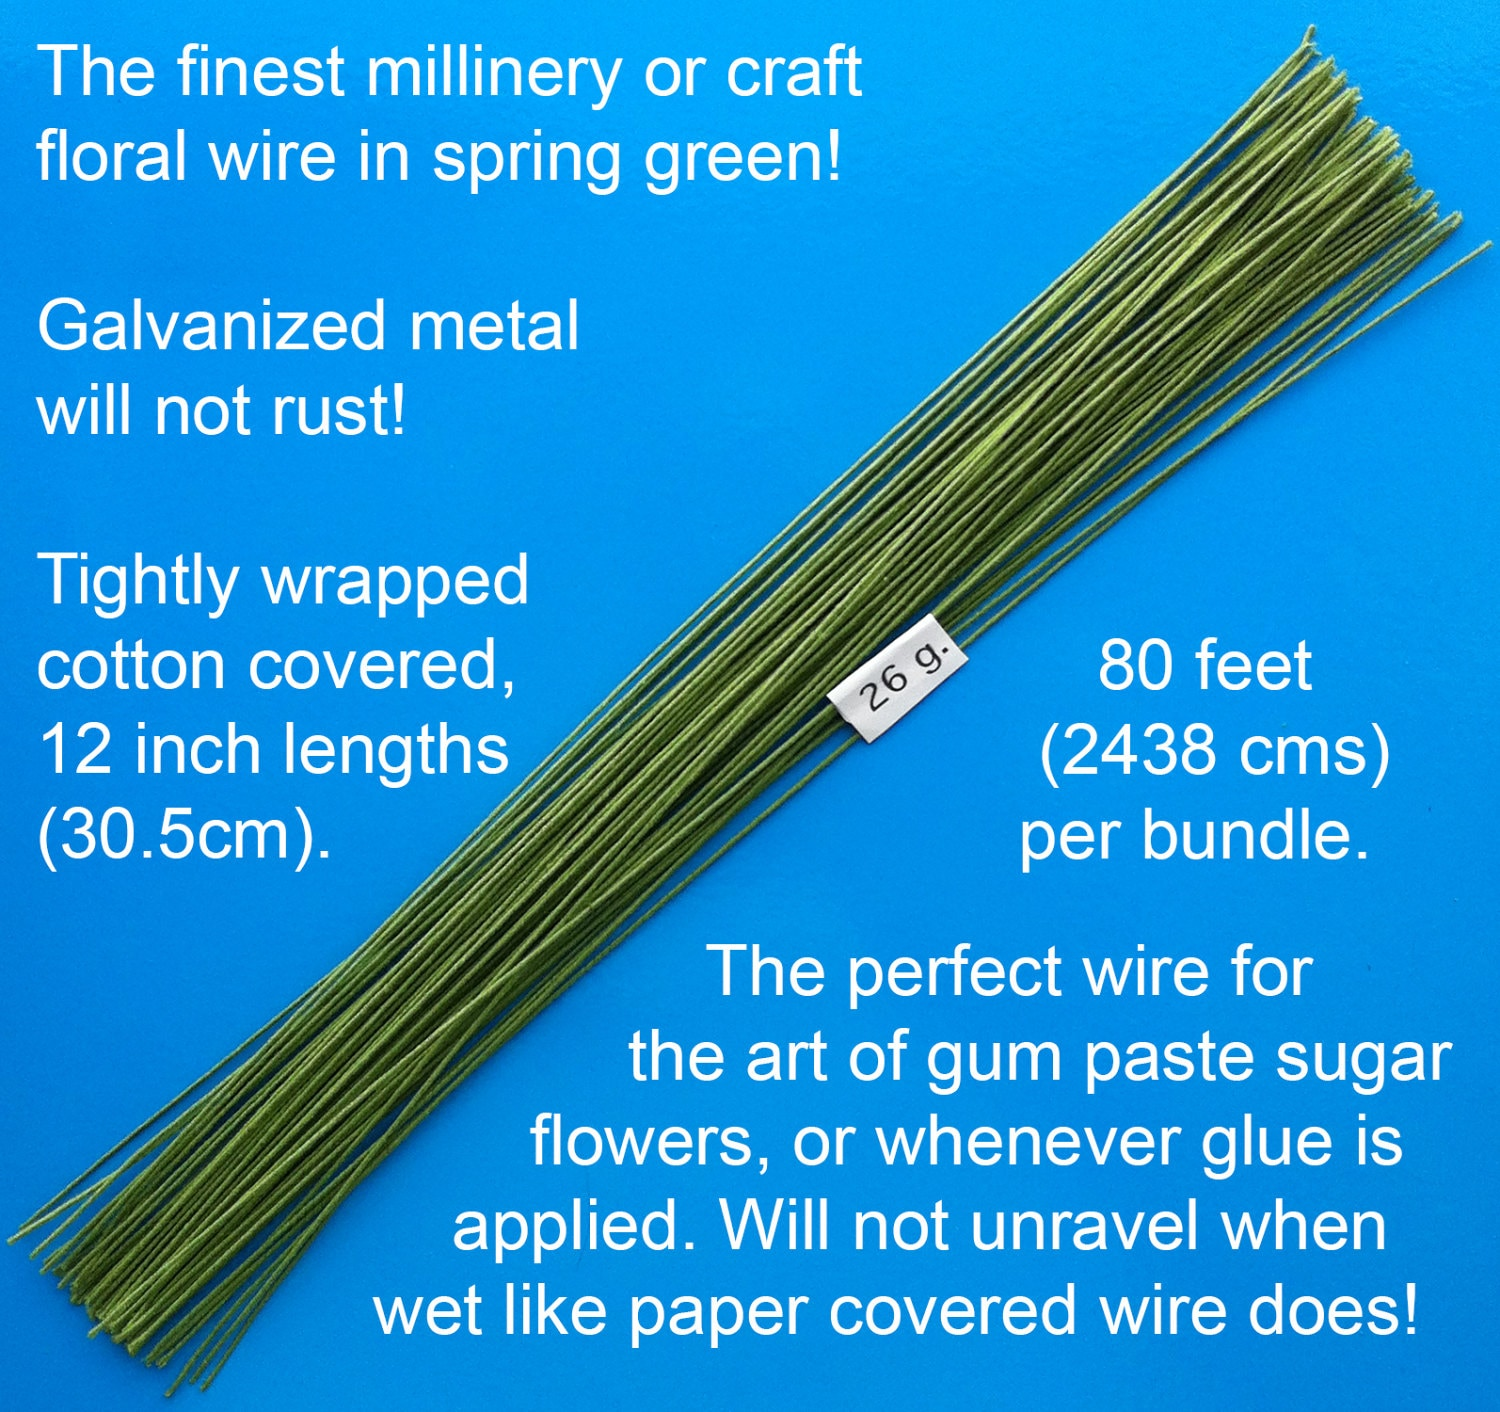 Paper covered craft wire - Sold By Worldofsugarart